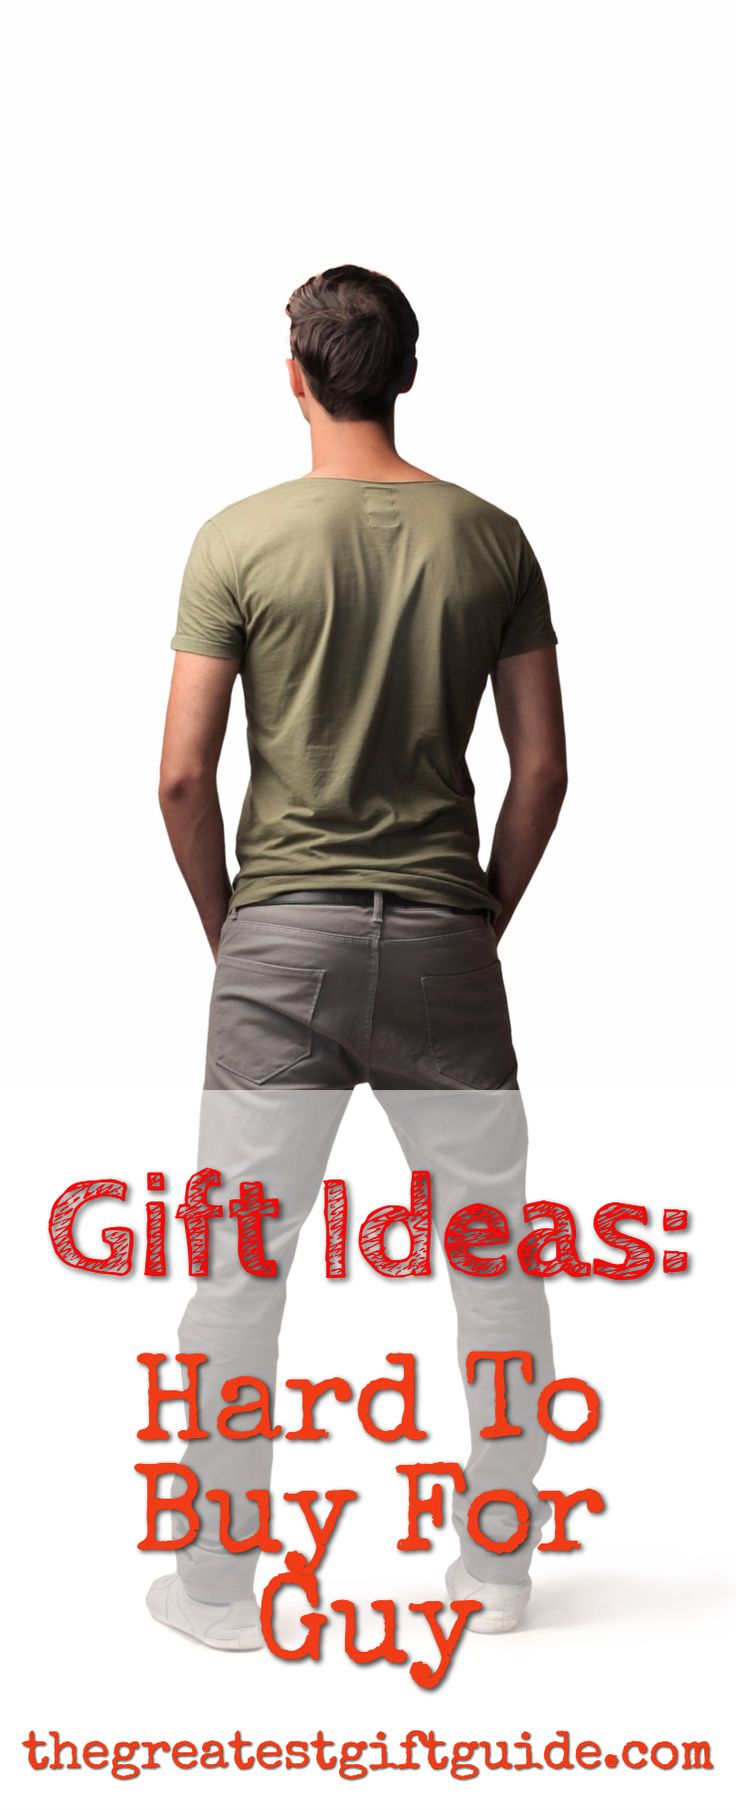 Christmas Gift Ideas For Dad Who Has Everything Part - 49: Gifts For The Hard To Buy For Guy U2013 A Complete Guide. Ideas For  ChristmasChristmas ...